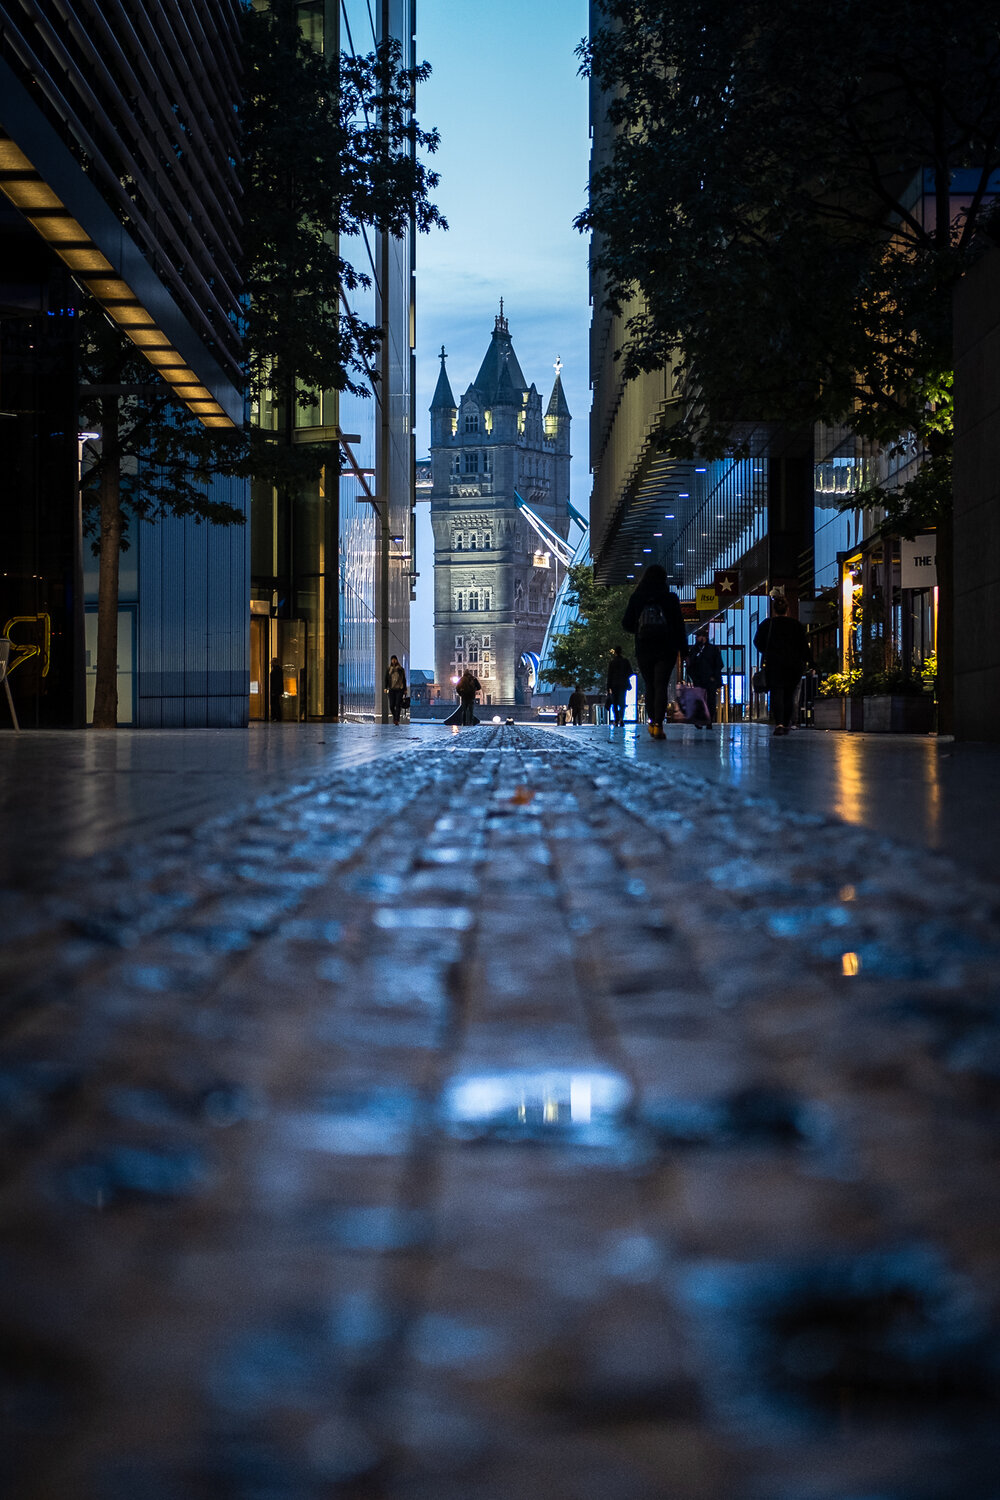 Photographing London with the Fuji XF35mm F2 - FUJI X PASSION